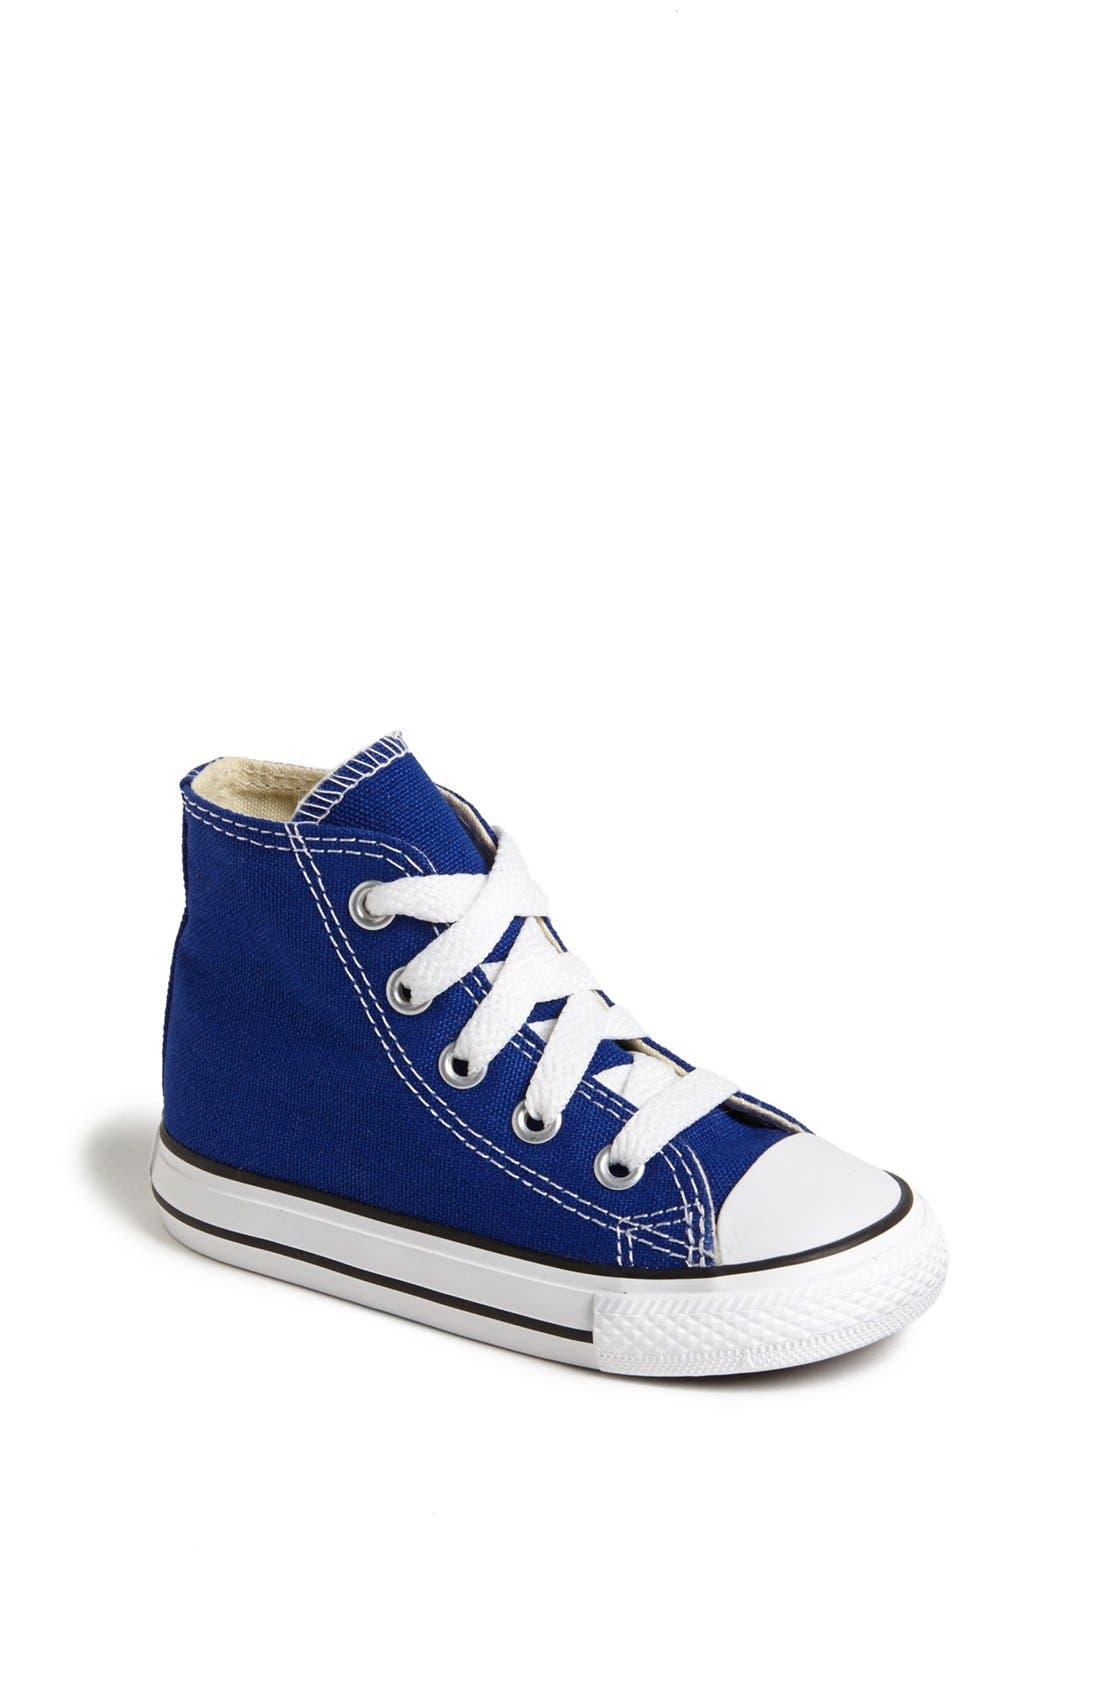 Main Image - Converse Chuck Taylor® All Star® High Top Sneaker (Baby, Walker, Toddler & Little Kid)